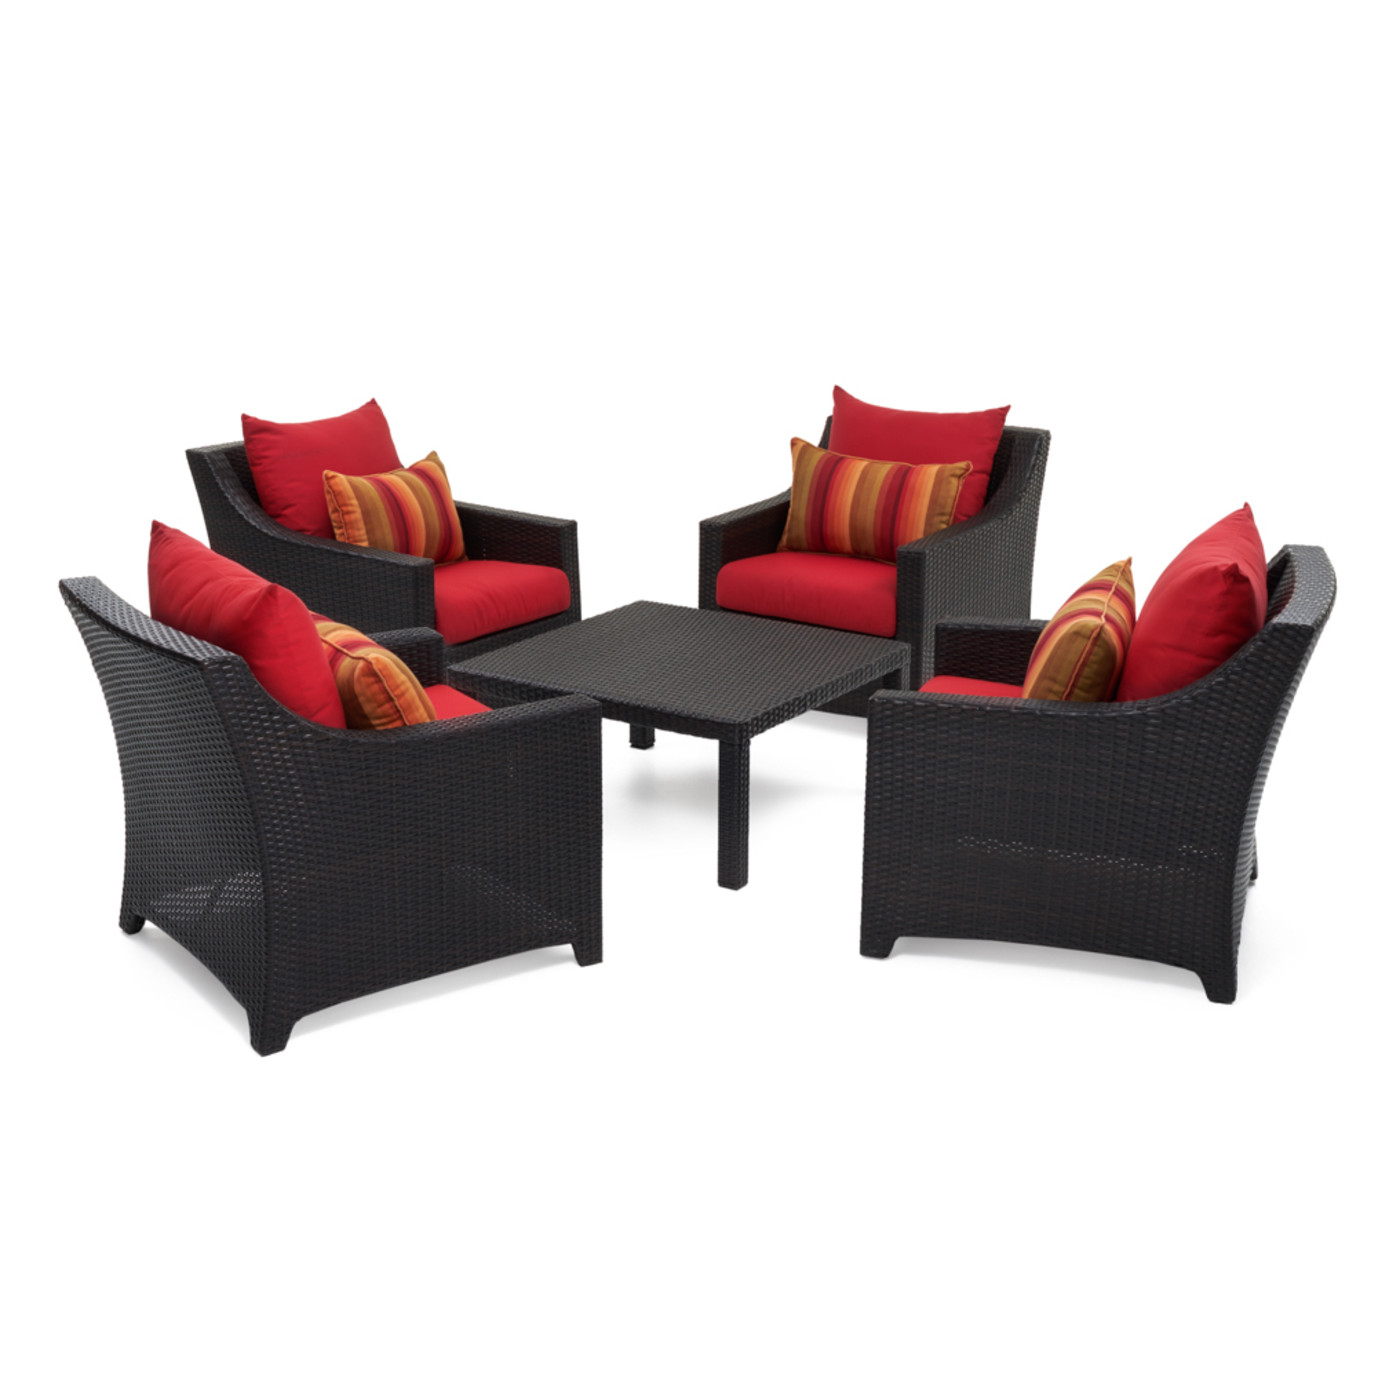 Deco® 5 Piece Club & Table Chat Set - Sunset Red